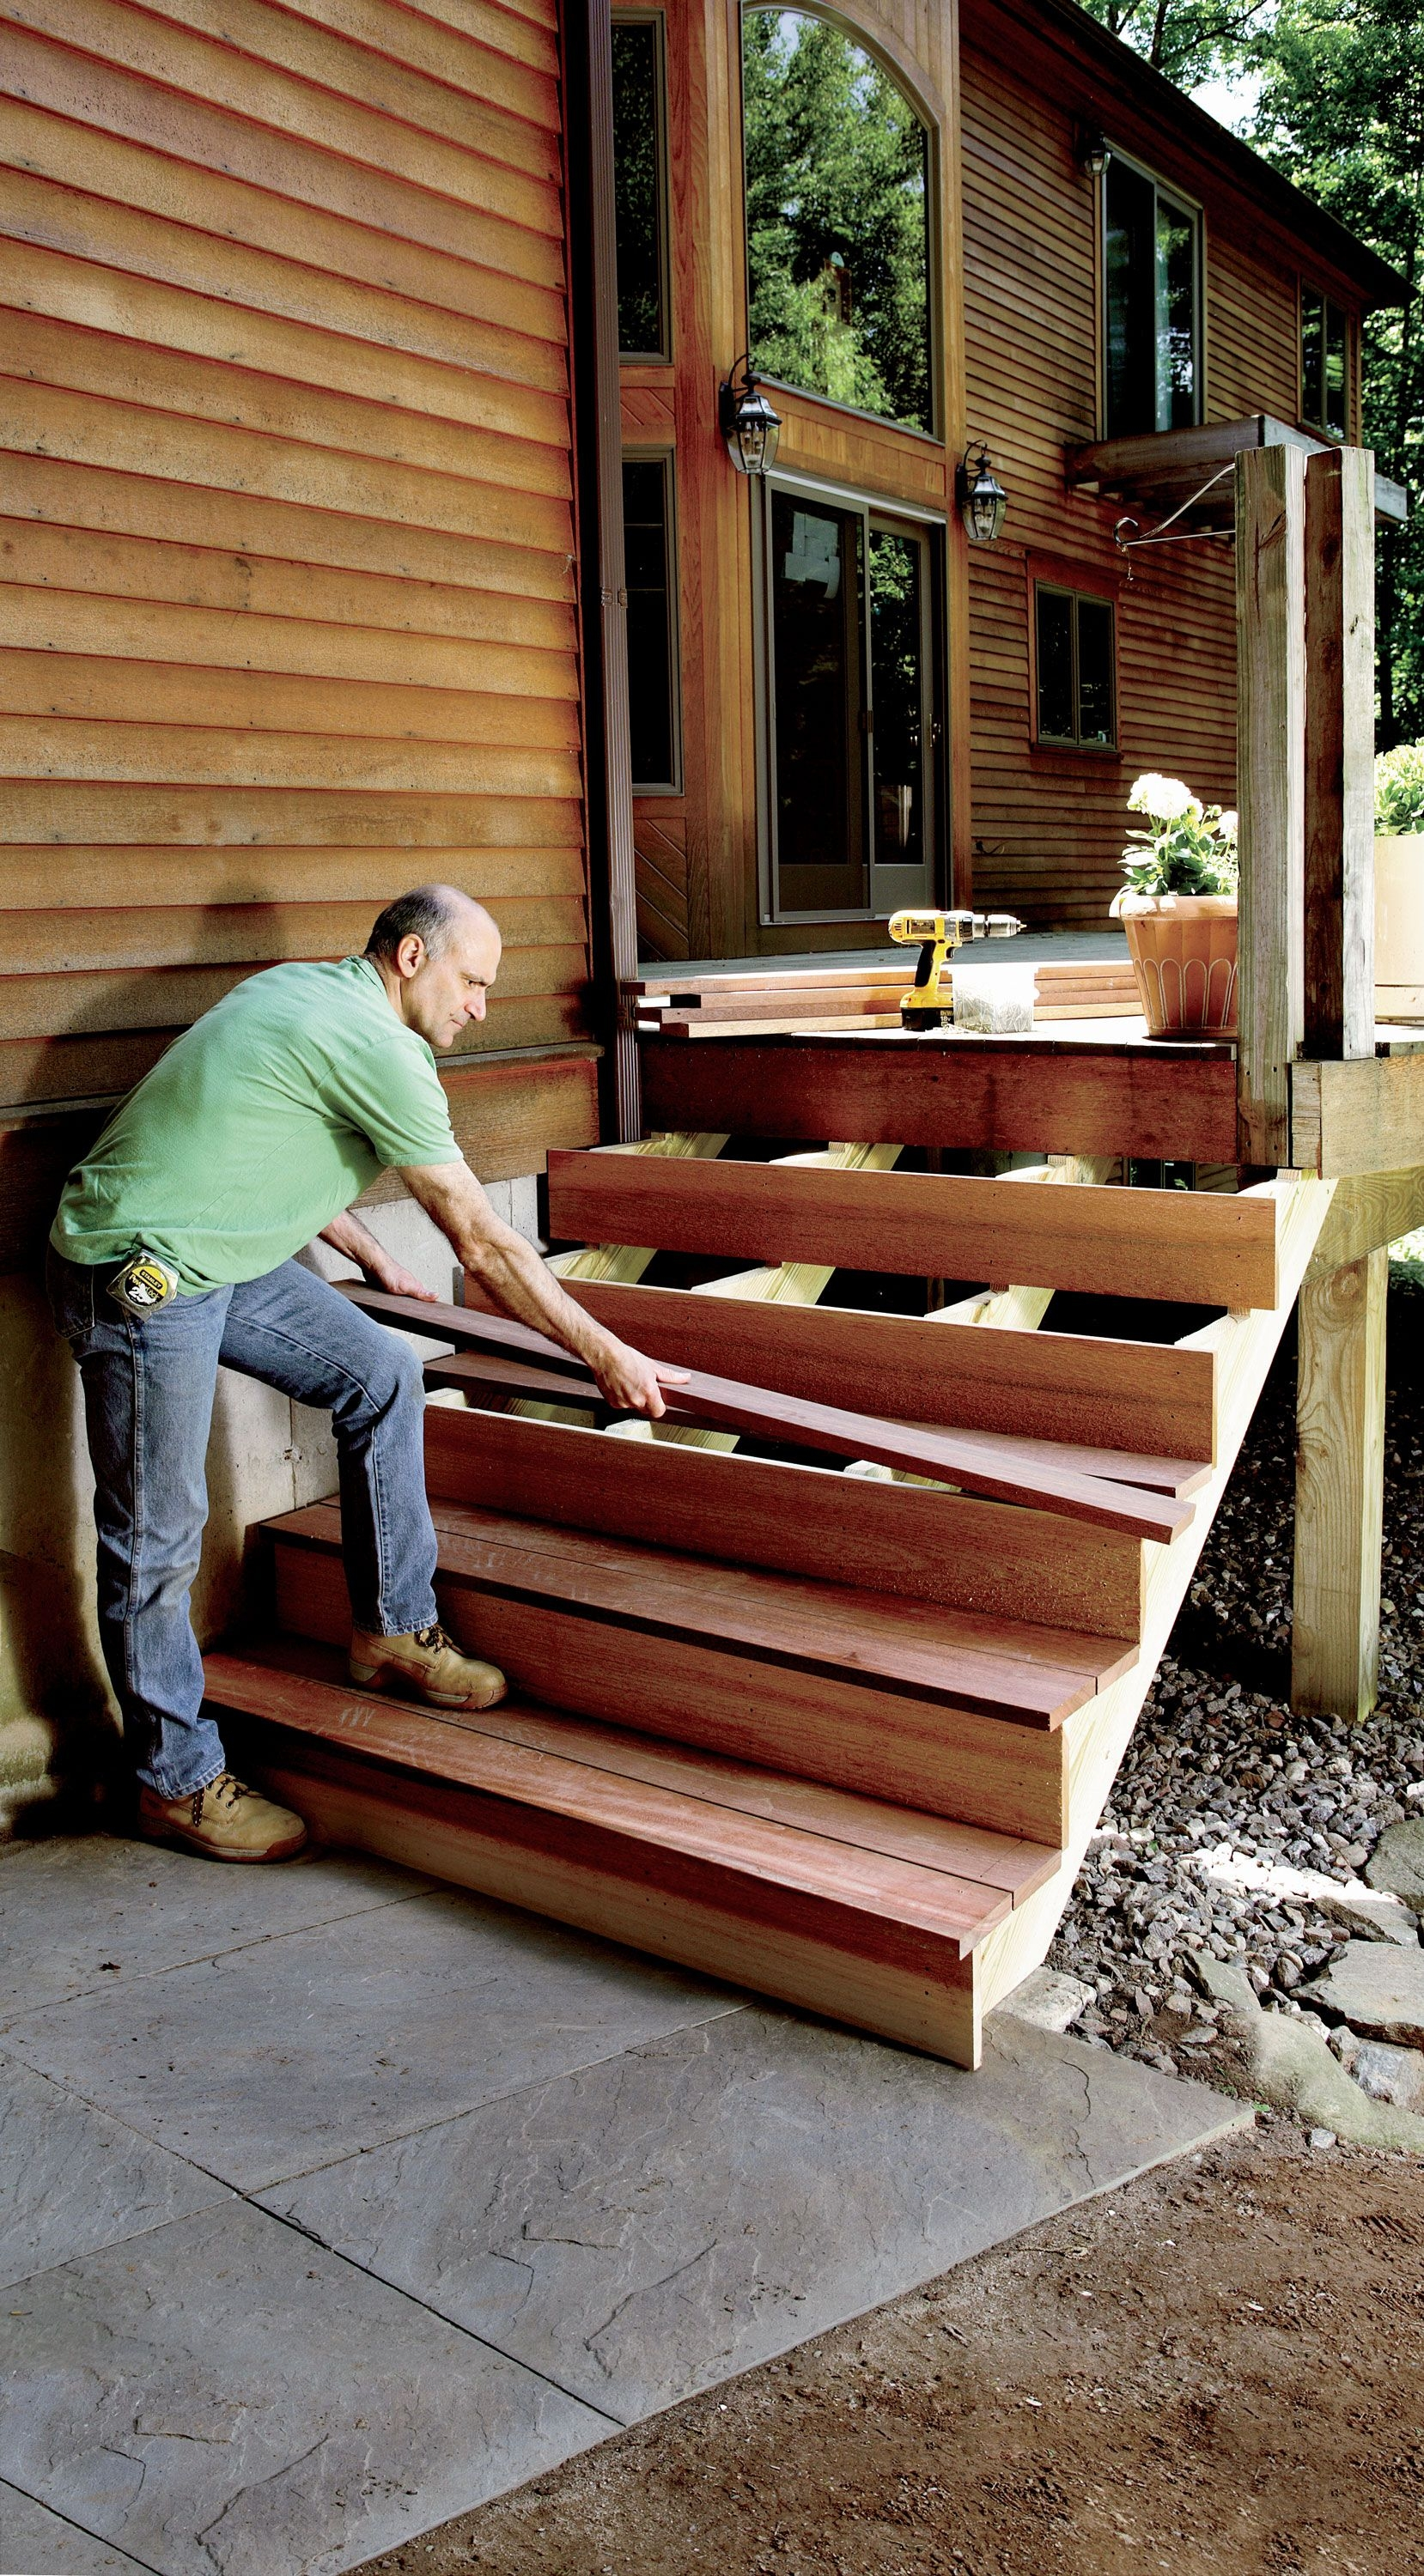 How To Build Stairs Stairs Design Plans | Wood For Outdoor Stairs | Railing | Risers | Staircase | Deck Railing | Treated Pine